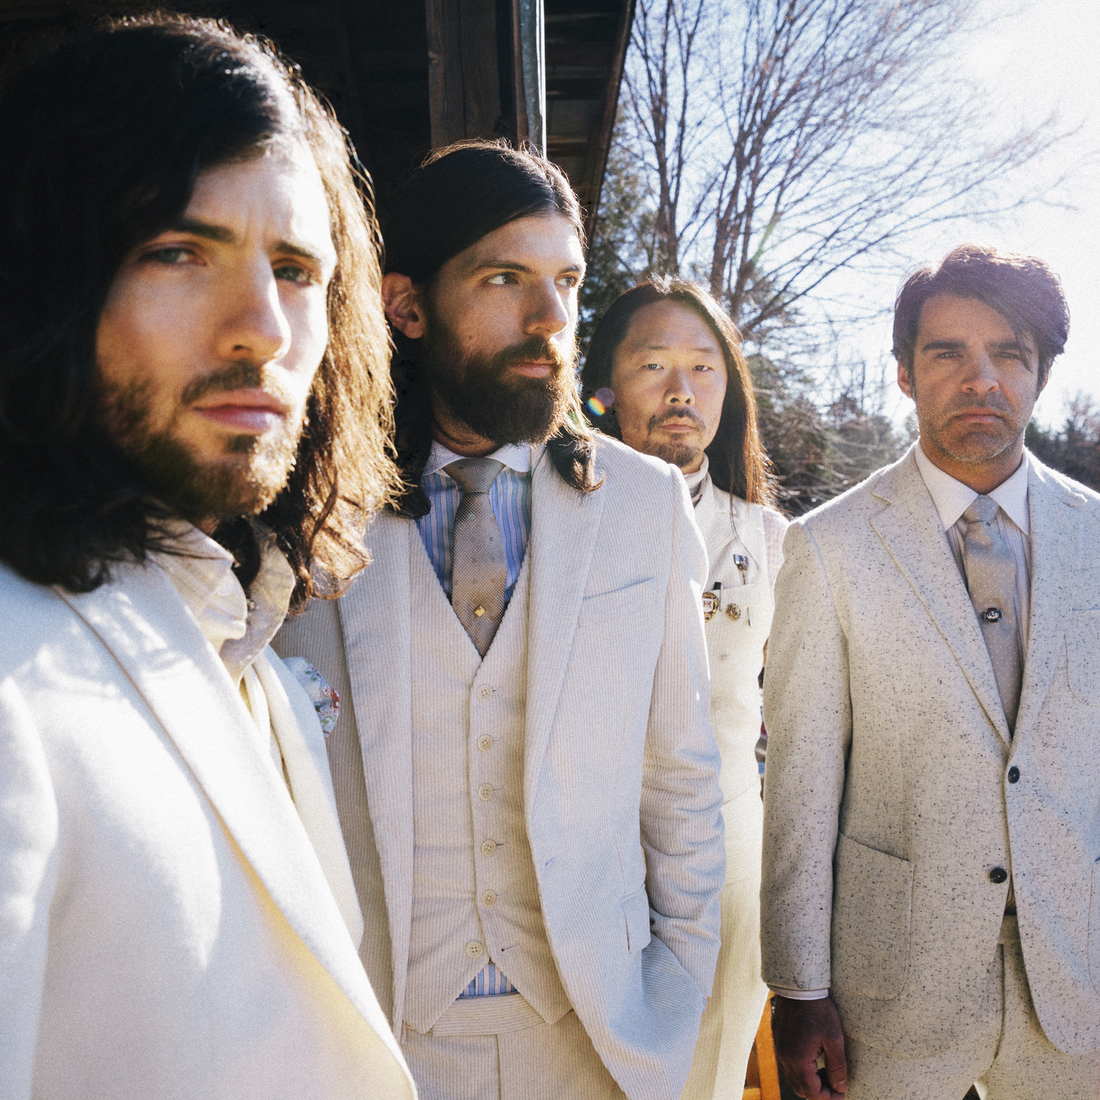 The Avett Brothers - Another Is Waiting (Live) Lyrics